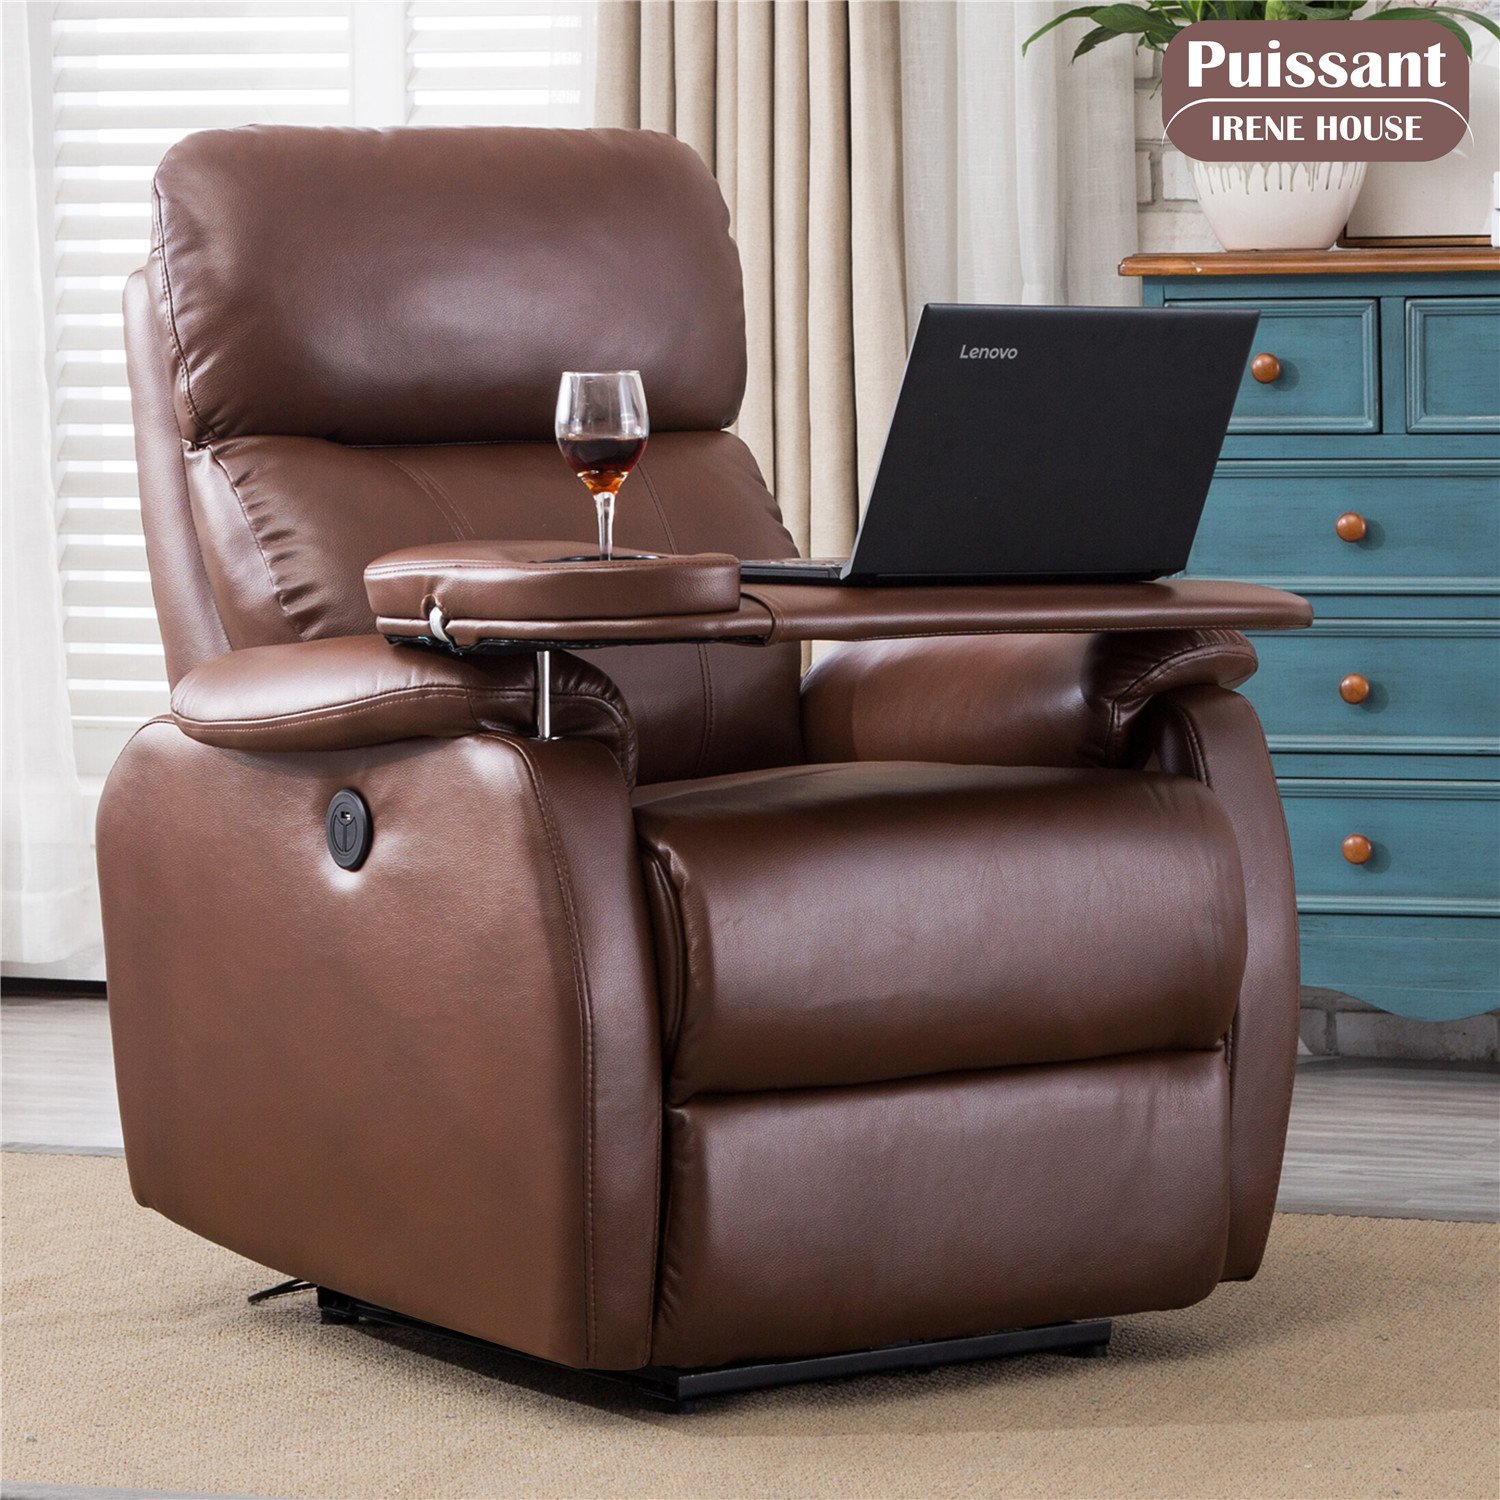 Irene House Power Home Theater Recliner With USB Port,Tray/Laptop Table(Brown)